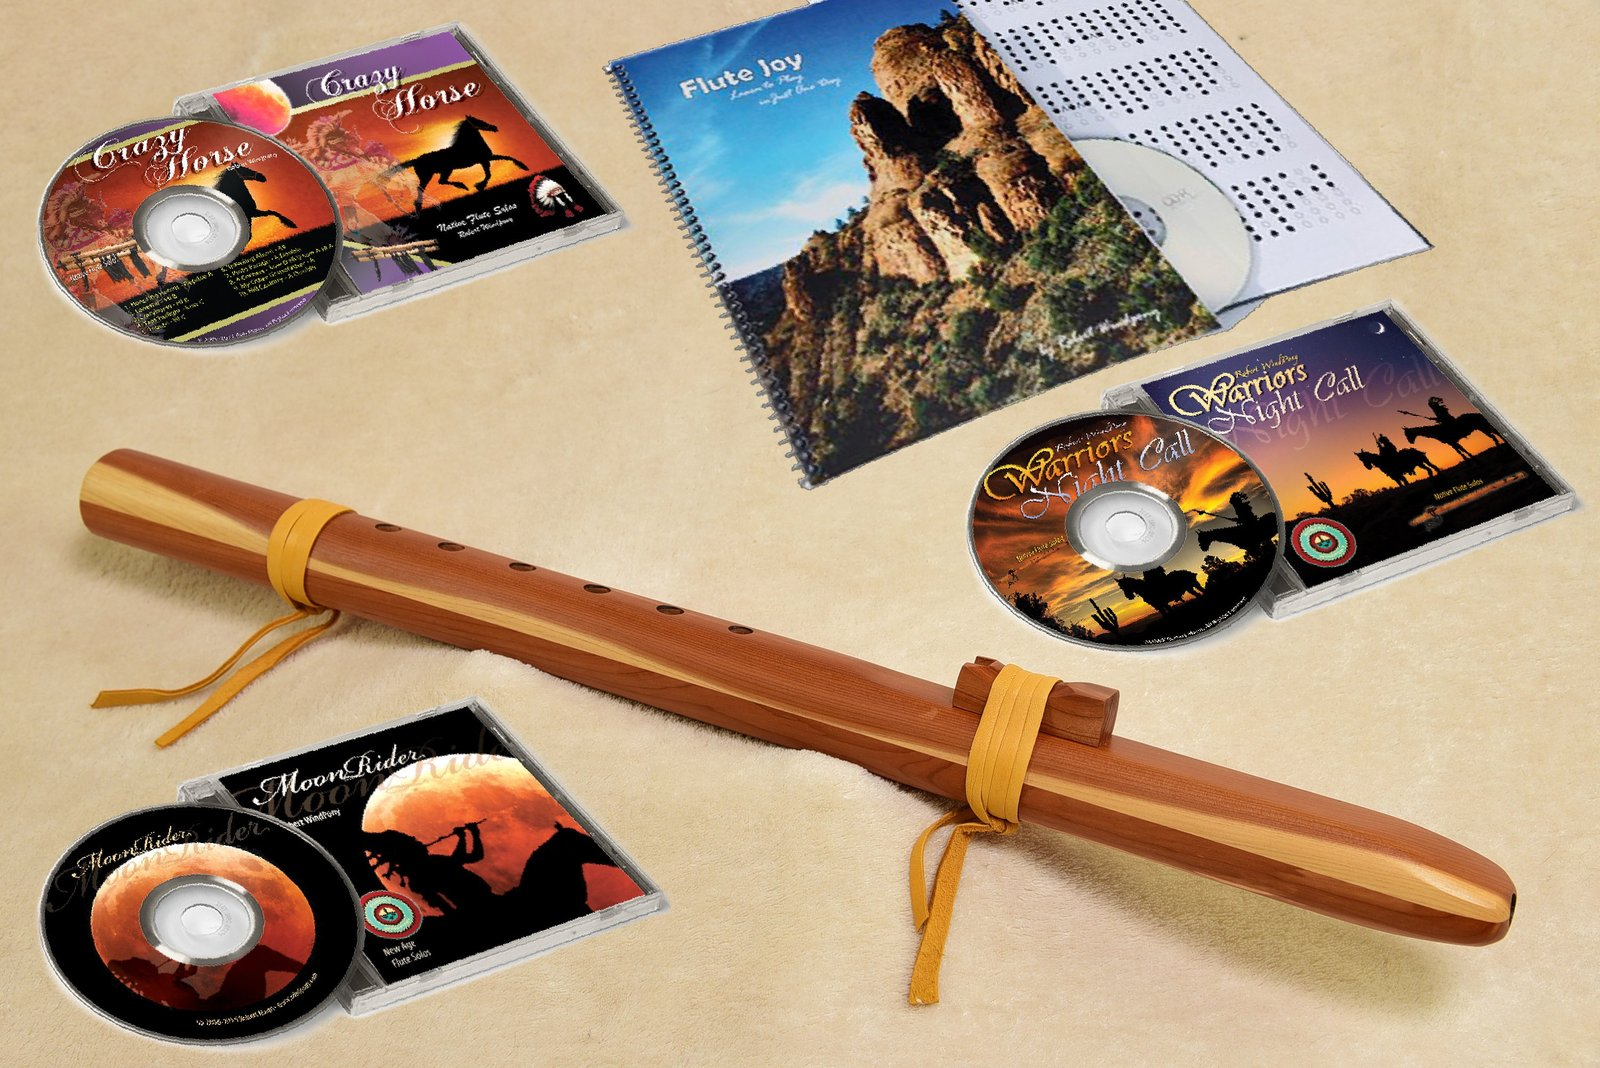 Windpony Cedar Flute in the Key of G with Instruction Book and 3 Flute CD's